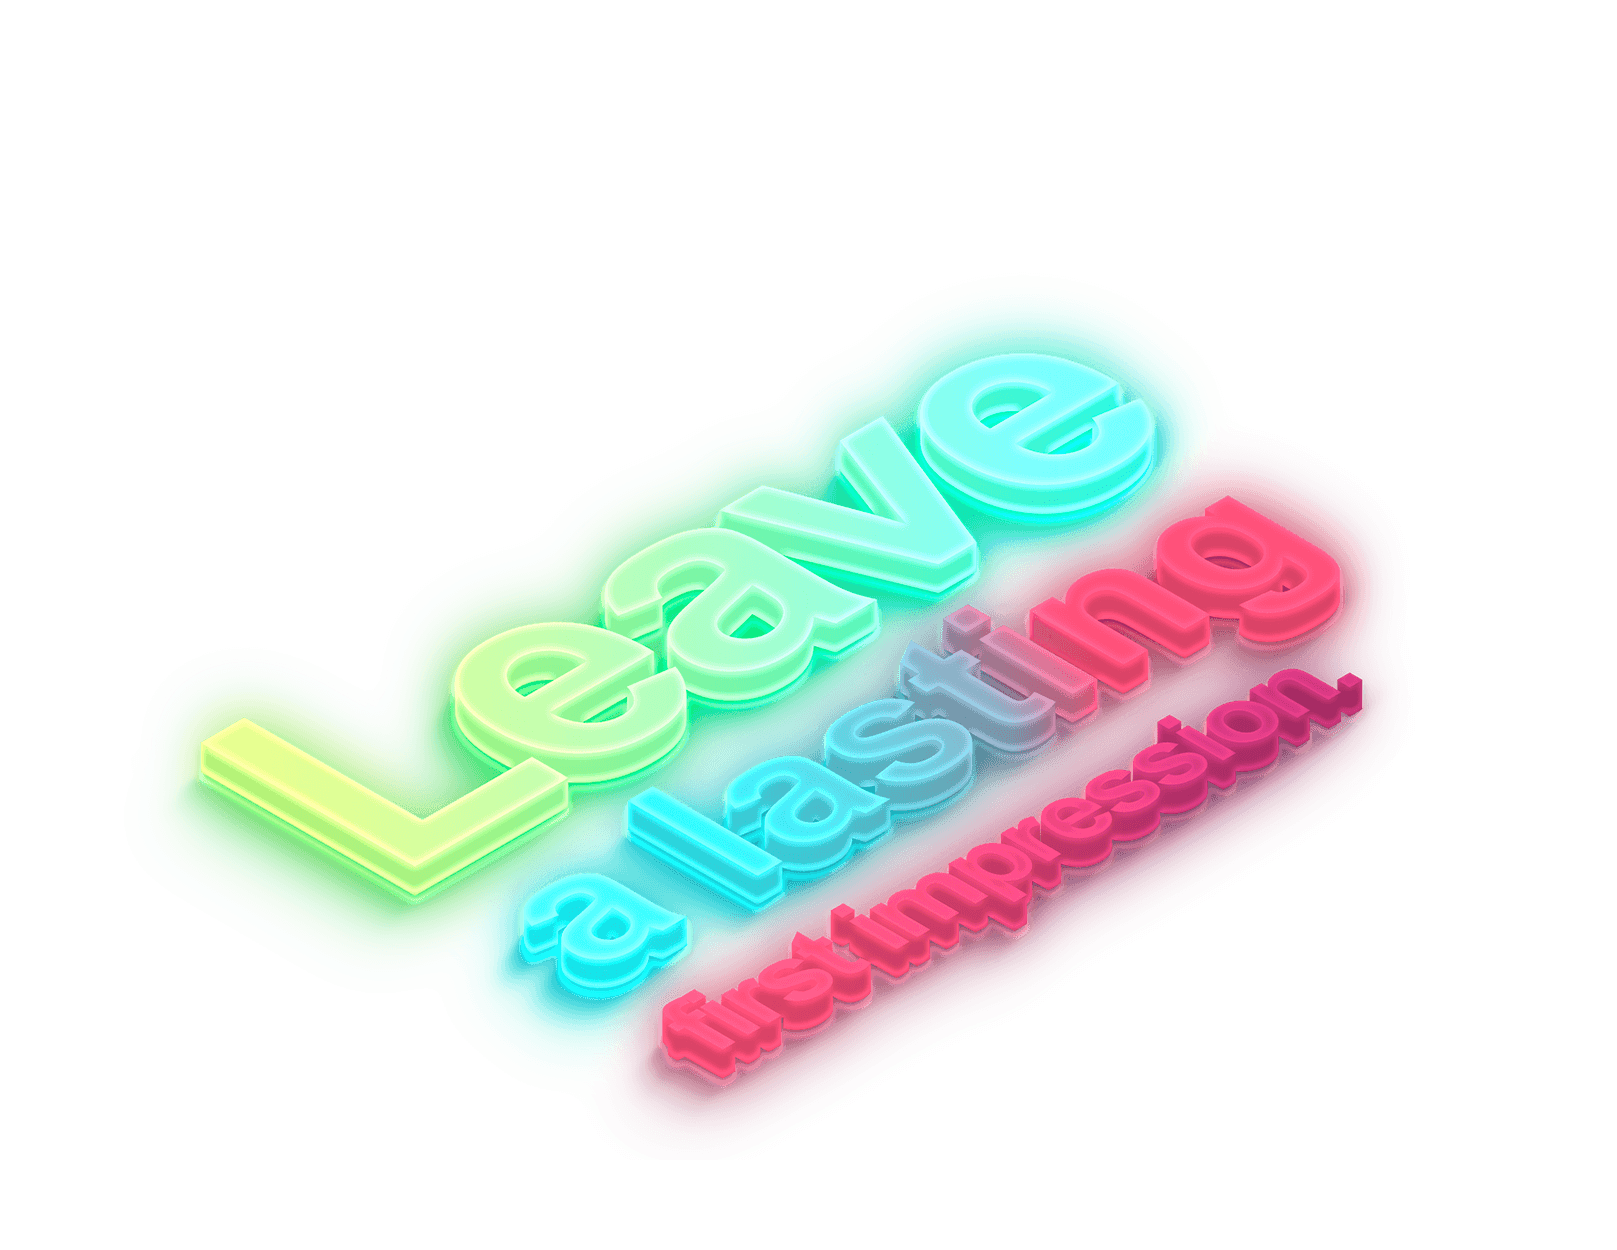 """3D isometric icon of the words """"Leave a lasting first impression."""" lit by color lights below."""